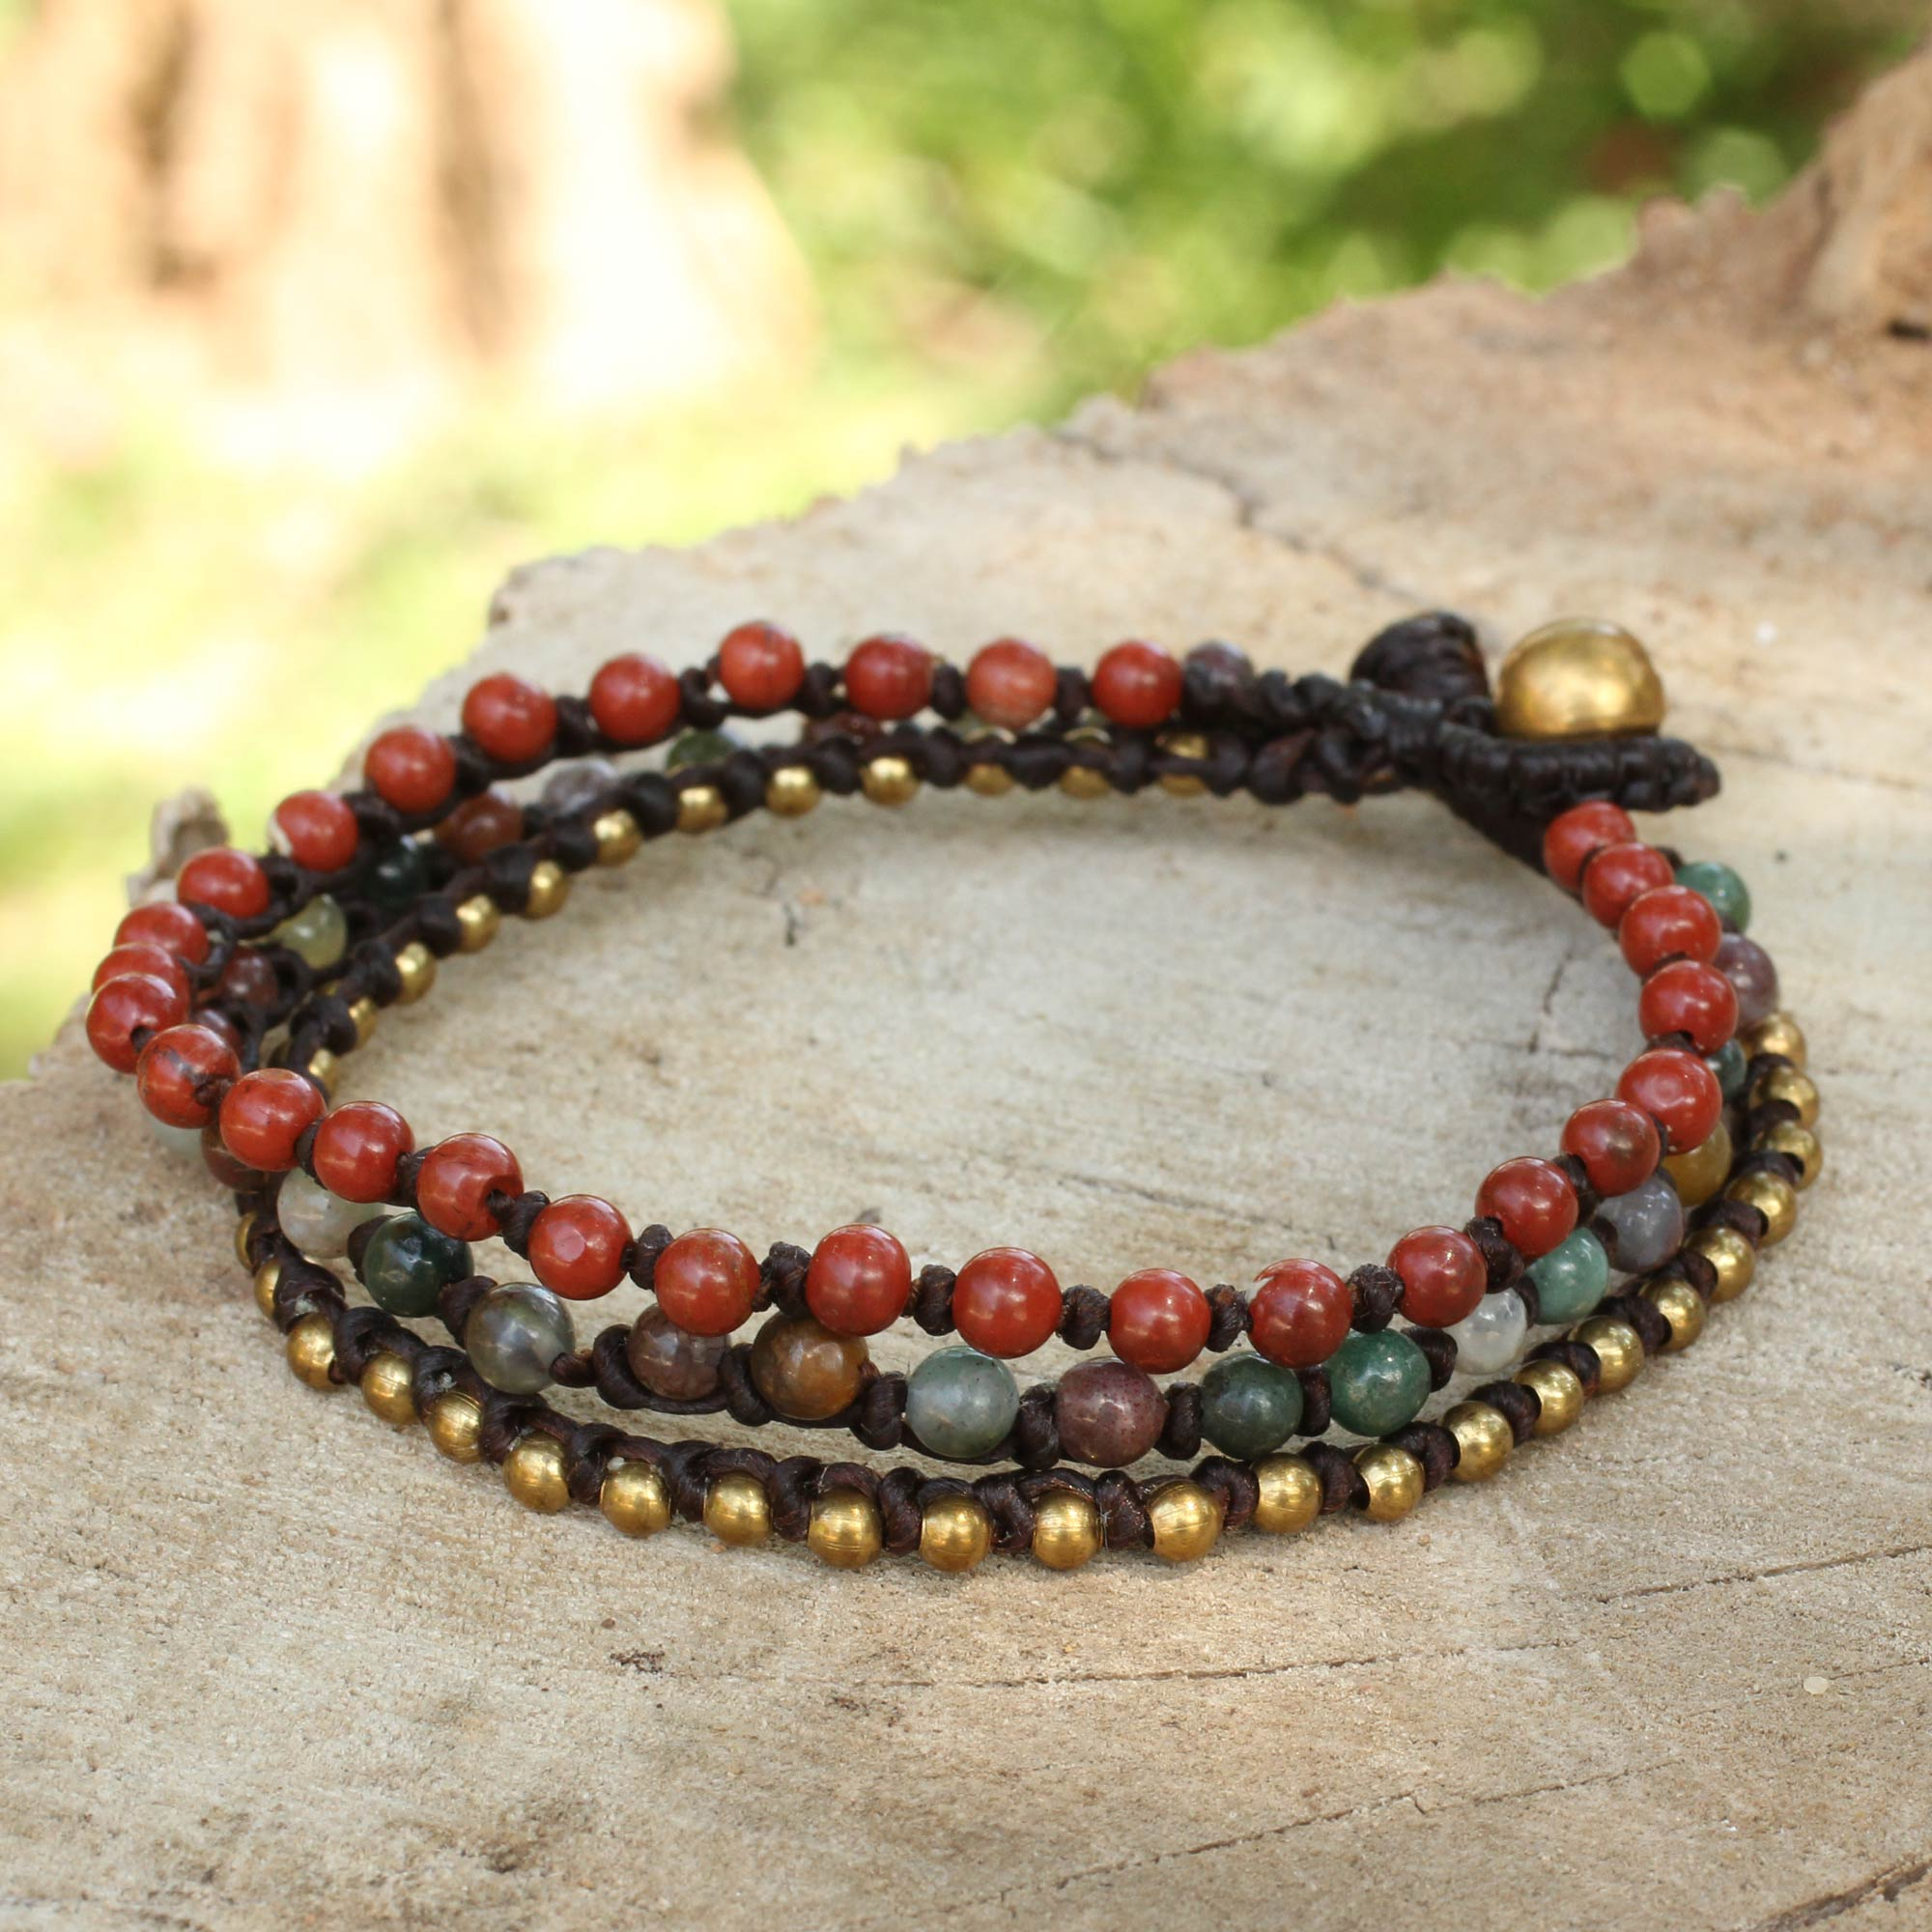 bracelet man cow road gold beads head products to bead stone natural